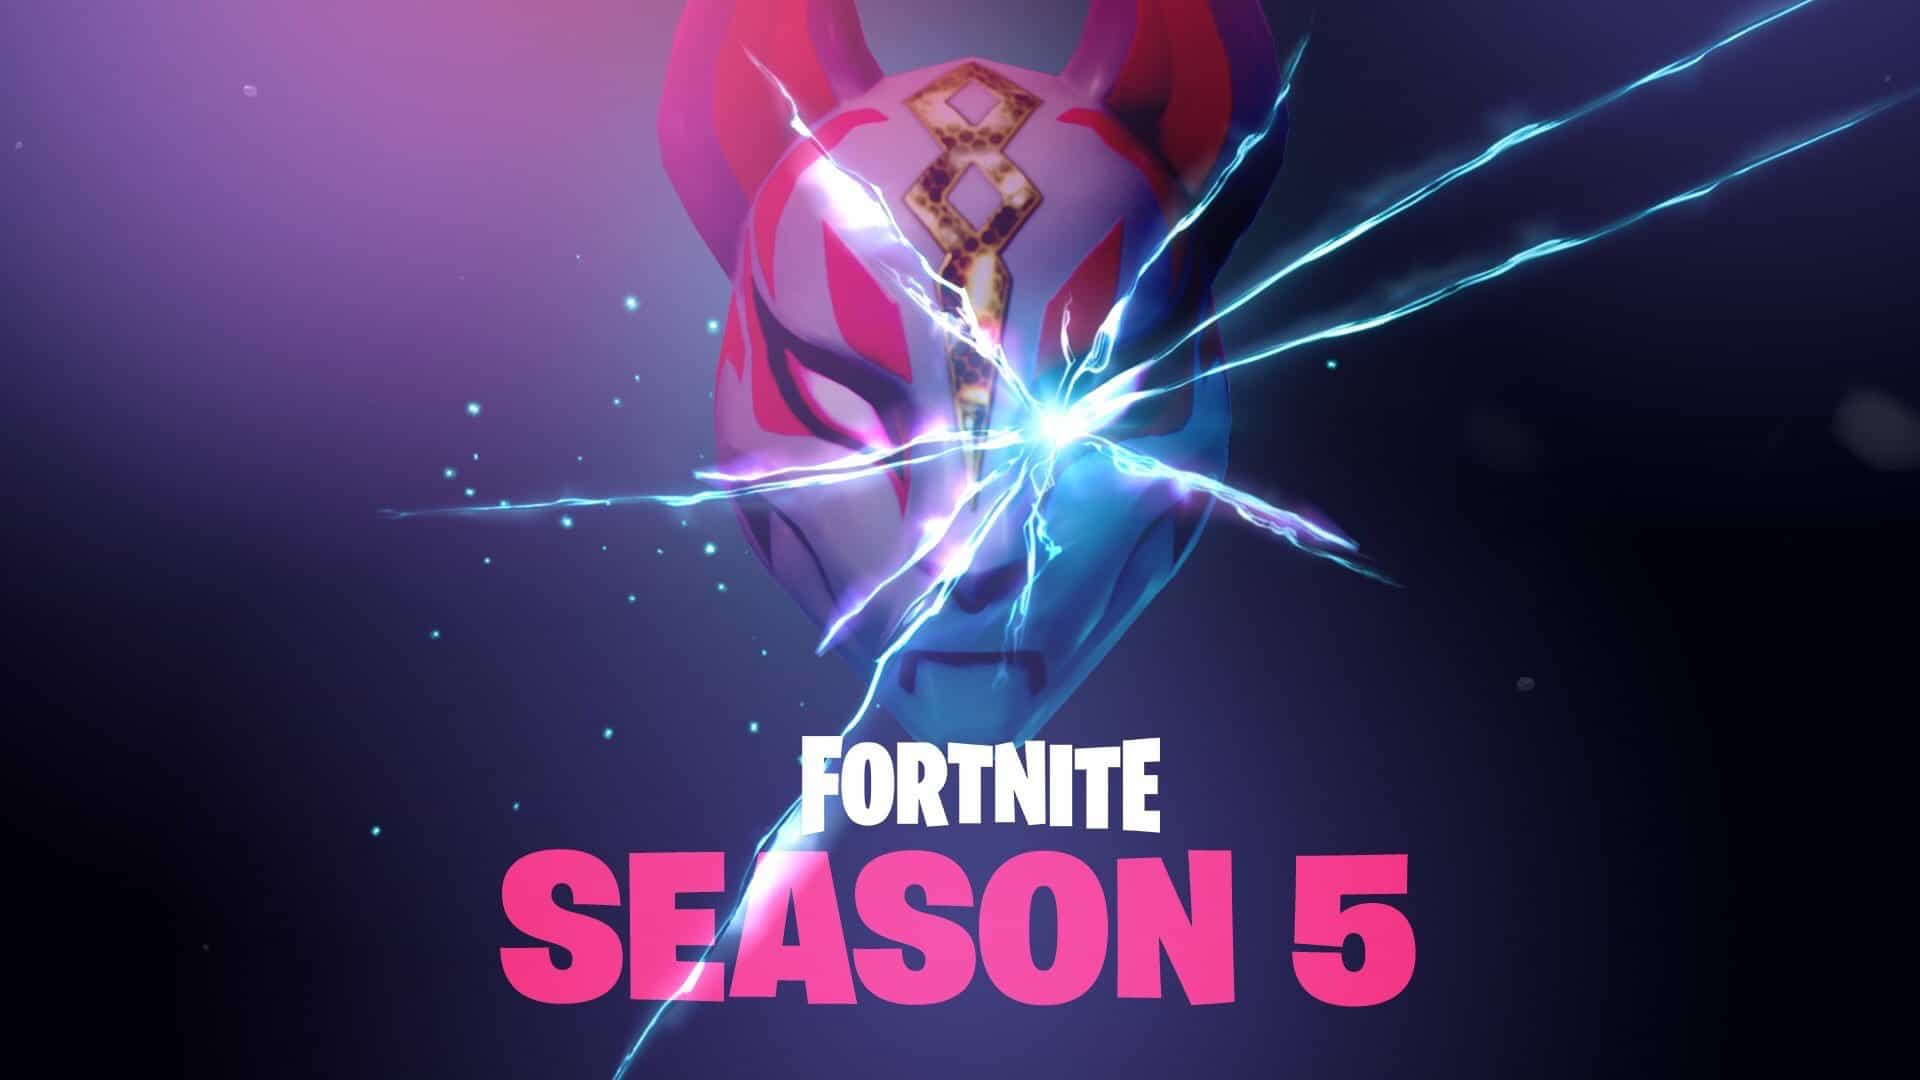 Supreme Fortnite Wallpapers Top Free Supreme Fortnite Backgrounds Wallpaperaccess